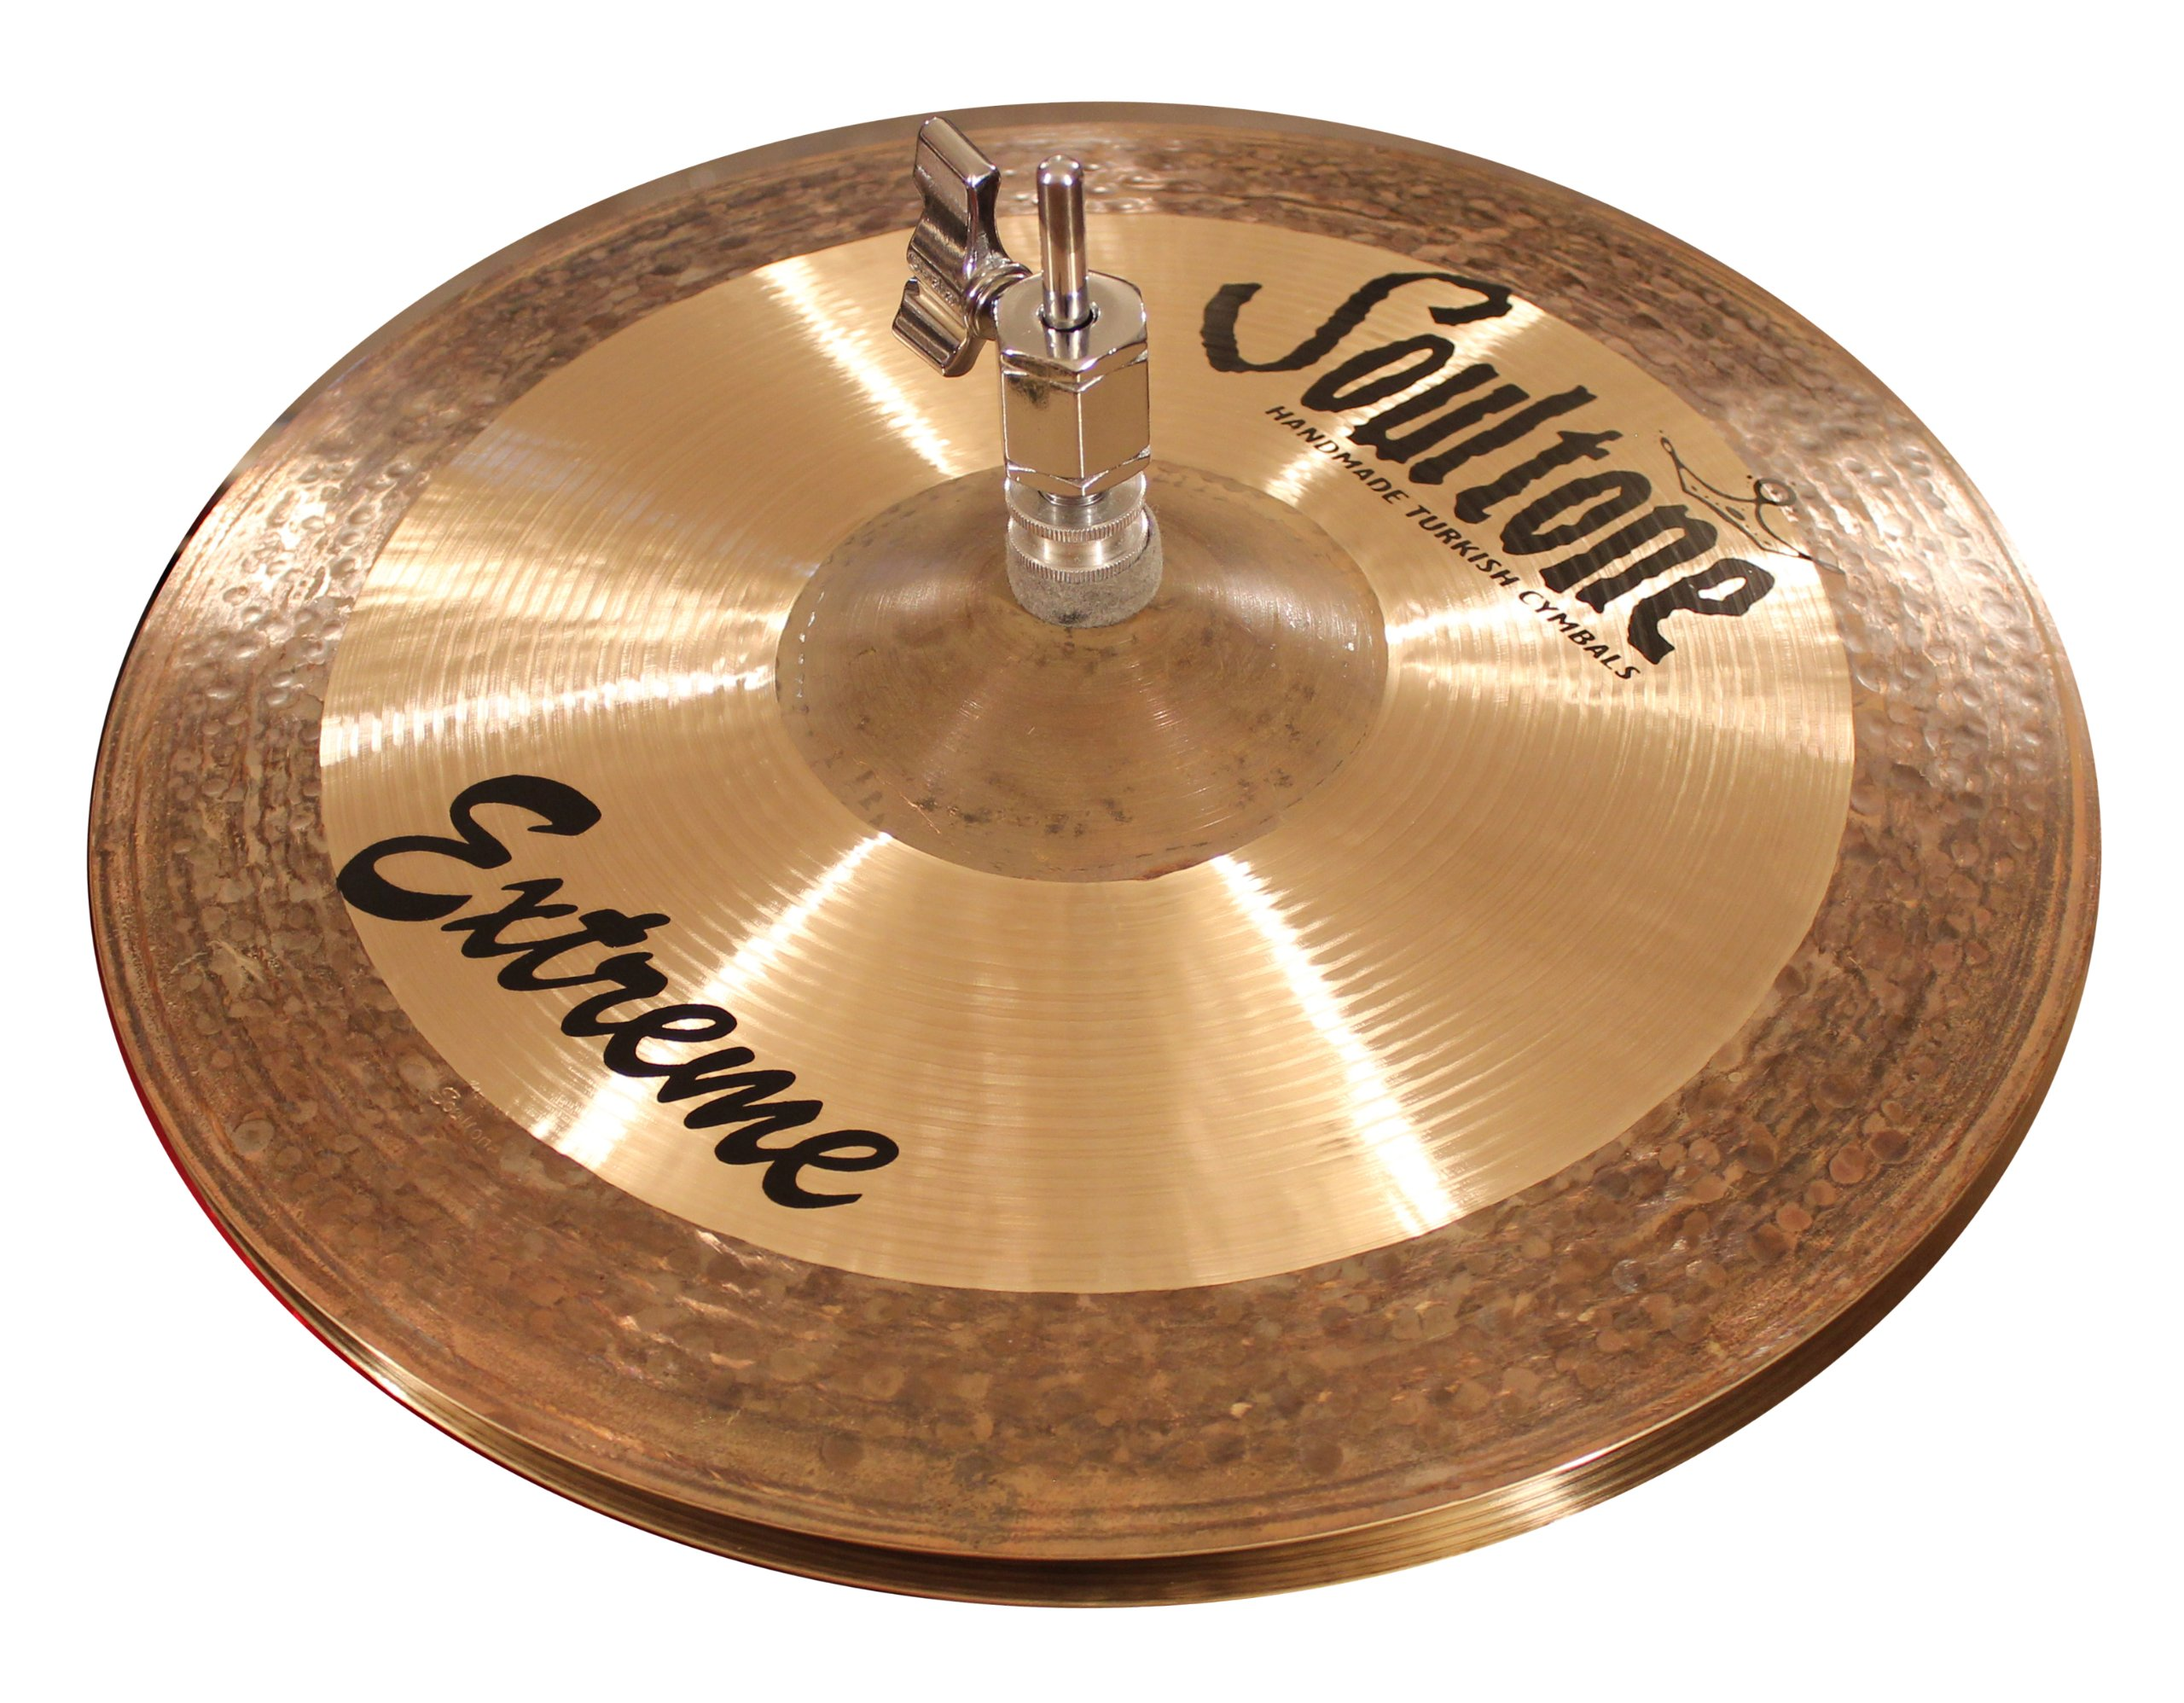 Soultone Cymbals EXT-HHT13-13'' Soultone Cymbals Extreme Hi Hats Pair by Soultone Cymbals